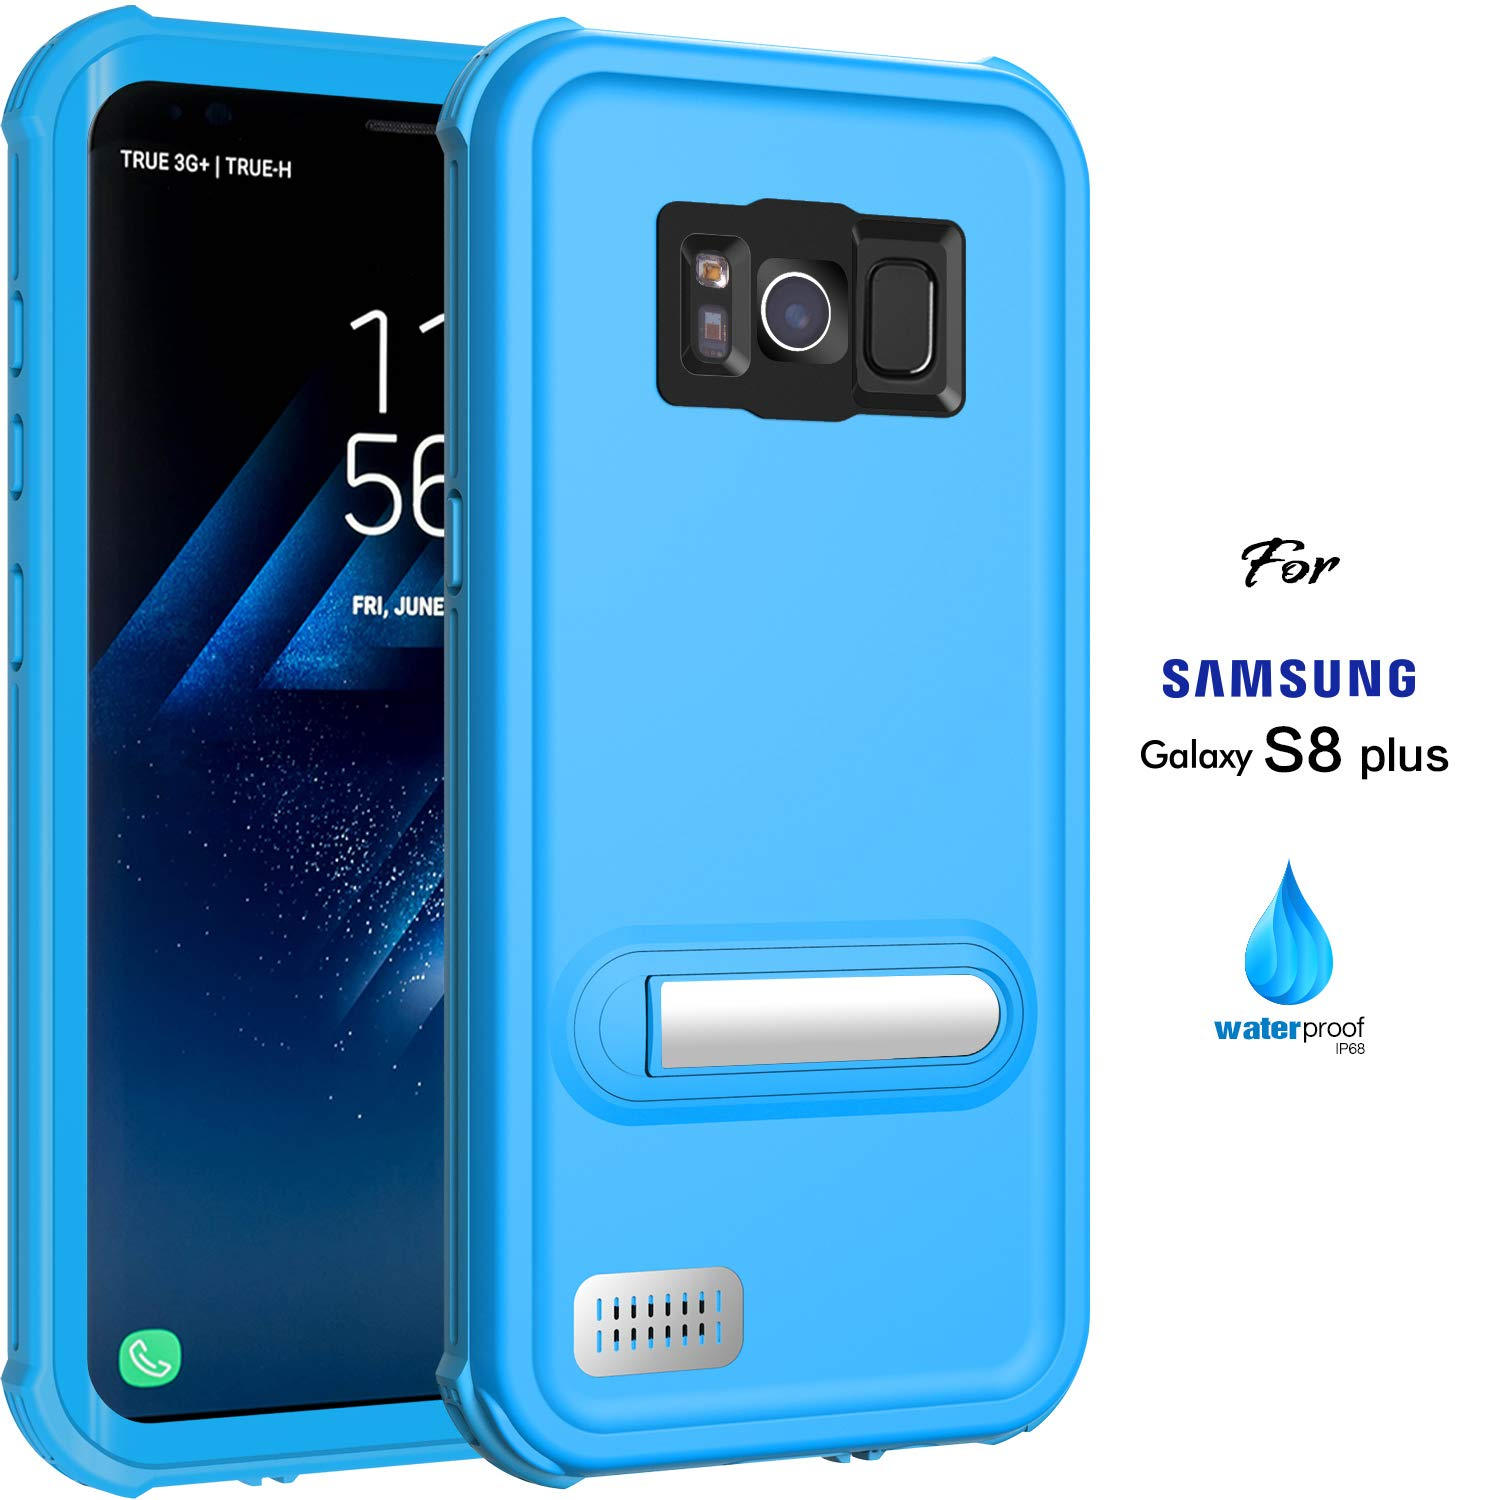 ASAKUKI Galaxy S8 Plus Waterproof Case - IP68 Certified Case, Full Body Protective, Shockproof, Scratch-Proof, Dustproof Case with Built-in Screen Protector for Samsung Galaxy S8 Plus - Black ASKS8P-OL